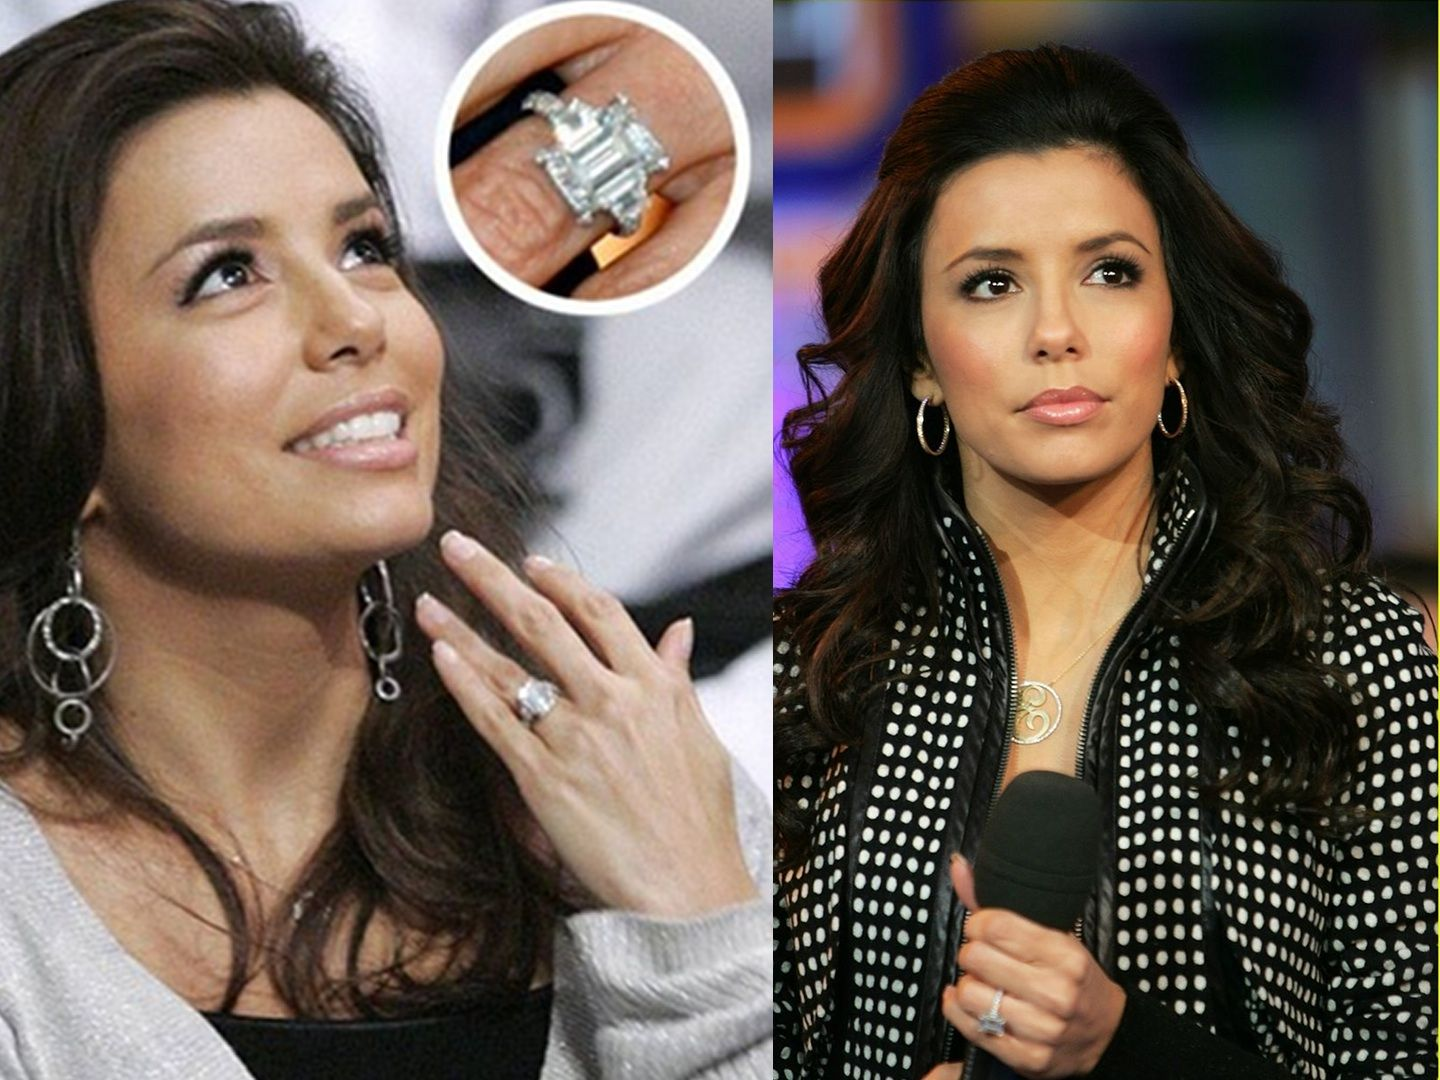 Heres A Set Of Pics With Some Stunning Celebrity Engagement Rings